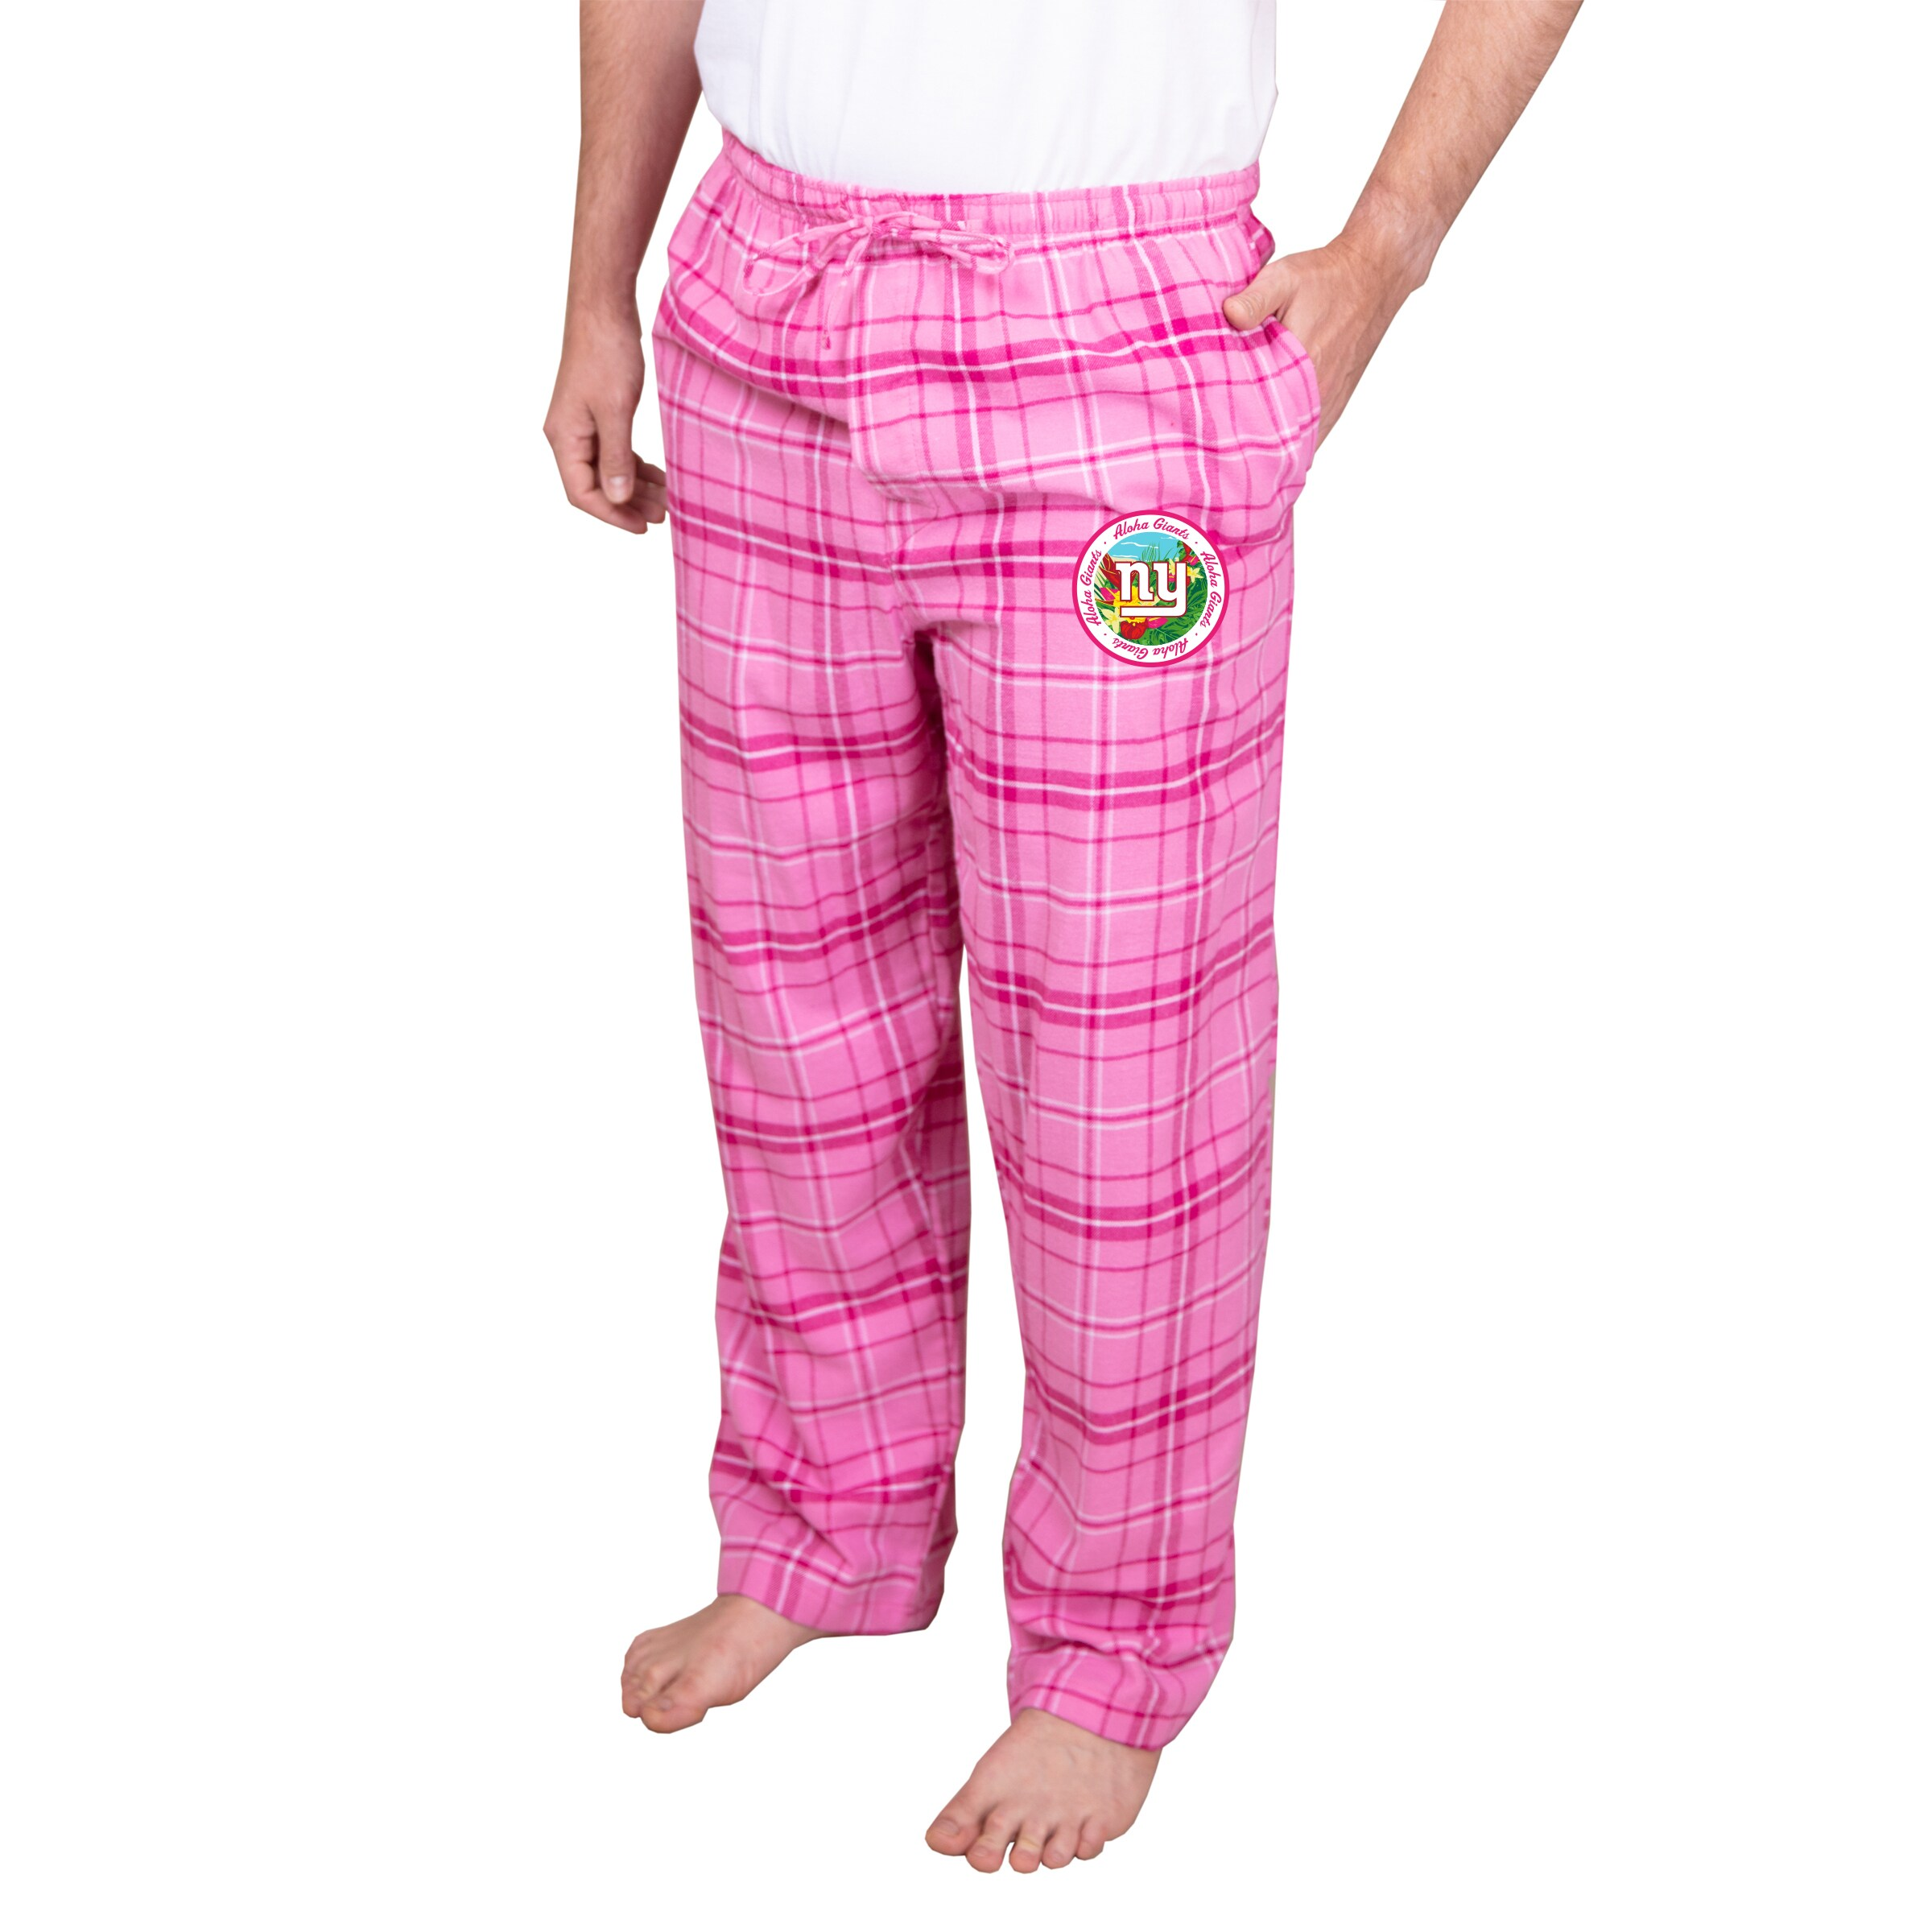 New York Giants Concepts Sport Ultimate Pants - Pink